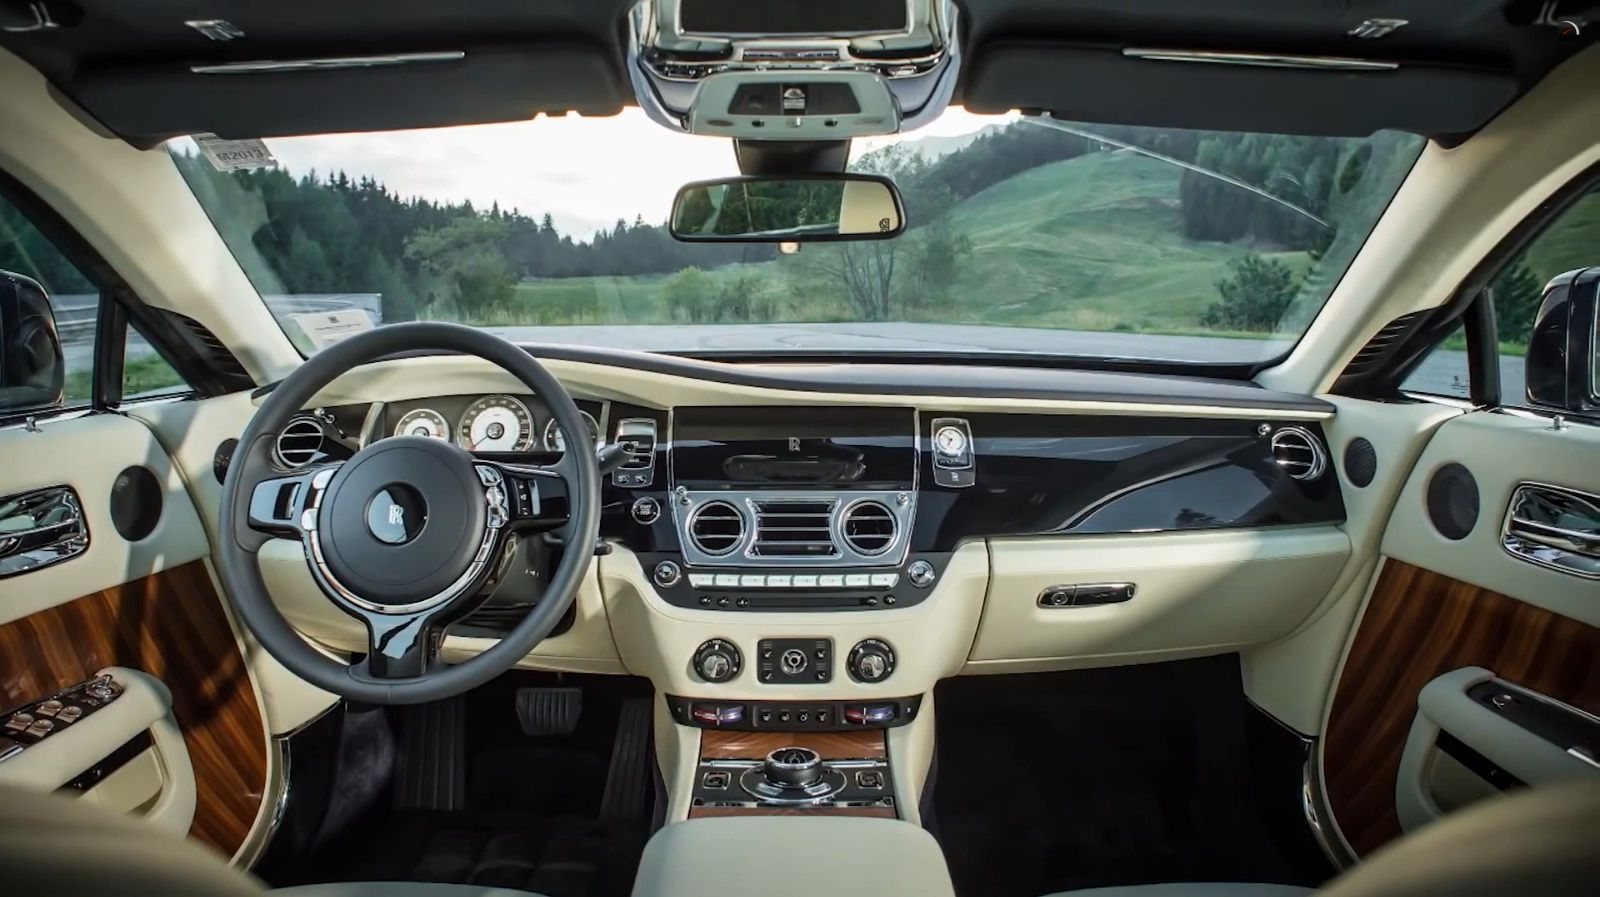 2014 rolls royce wraith interior an absolutely gorgeous vehicle click for full wallpaper for. Black Bedroom Furniture Sets. Home Design Ideas